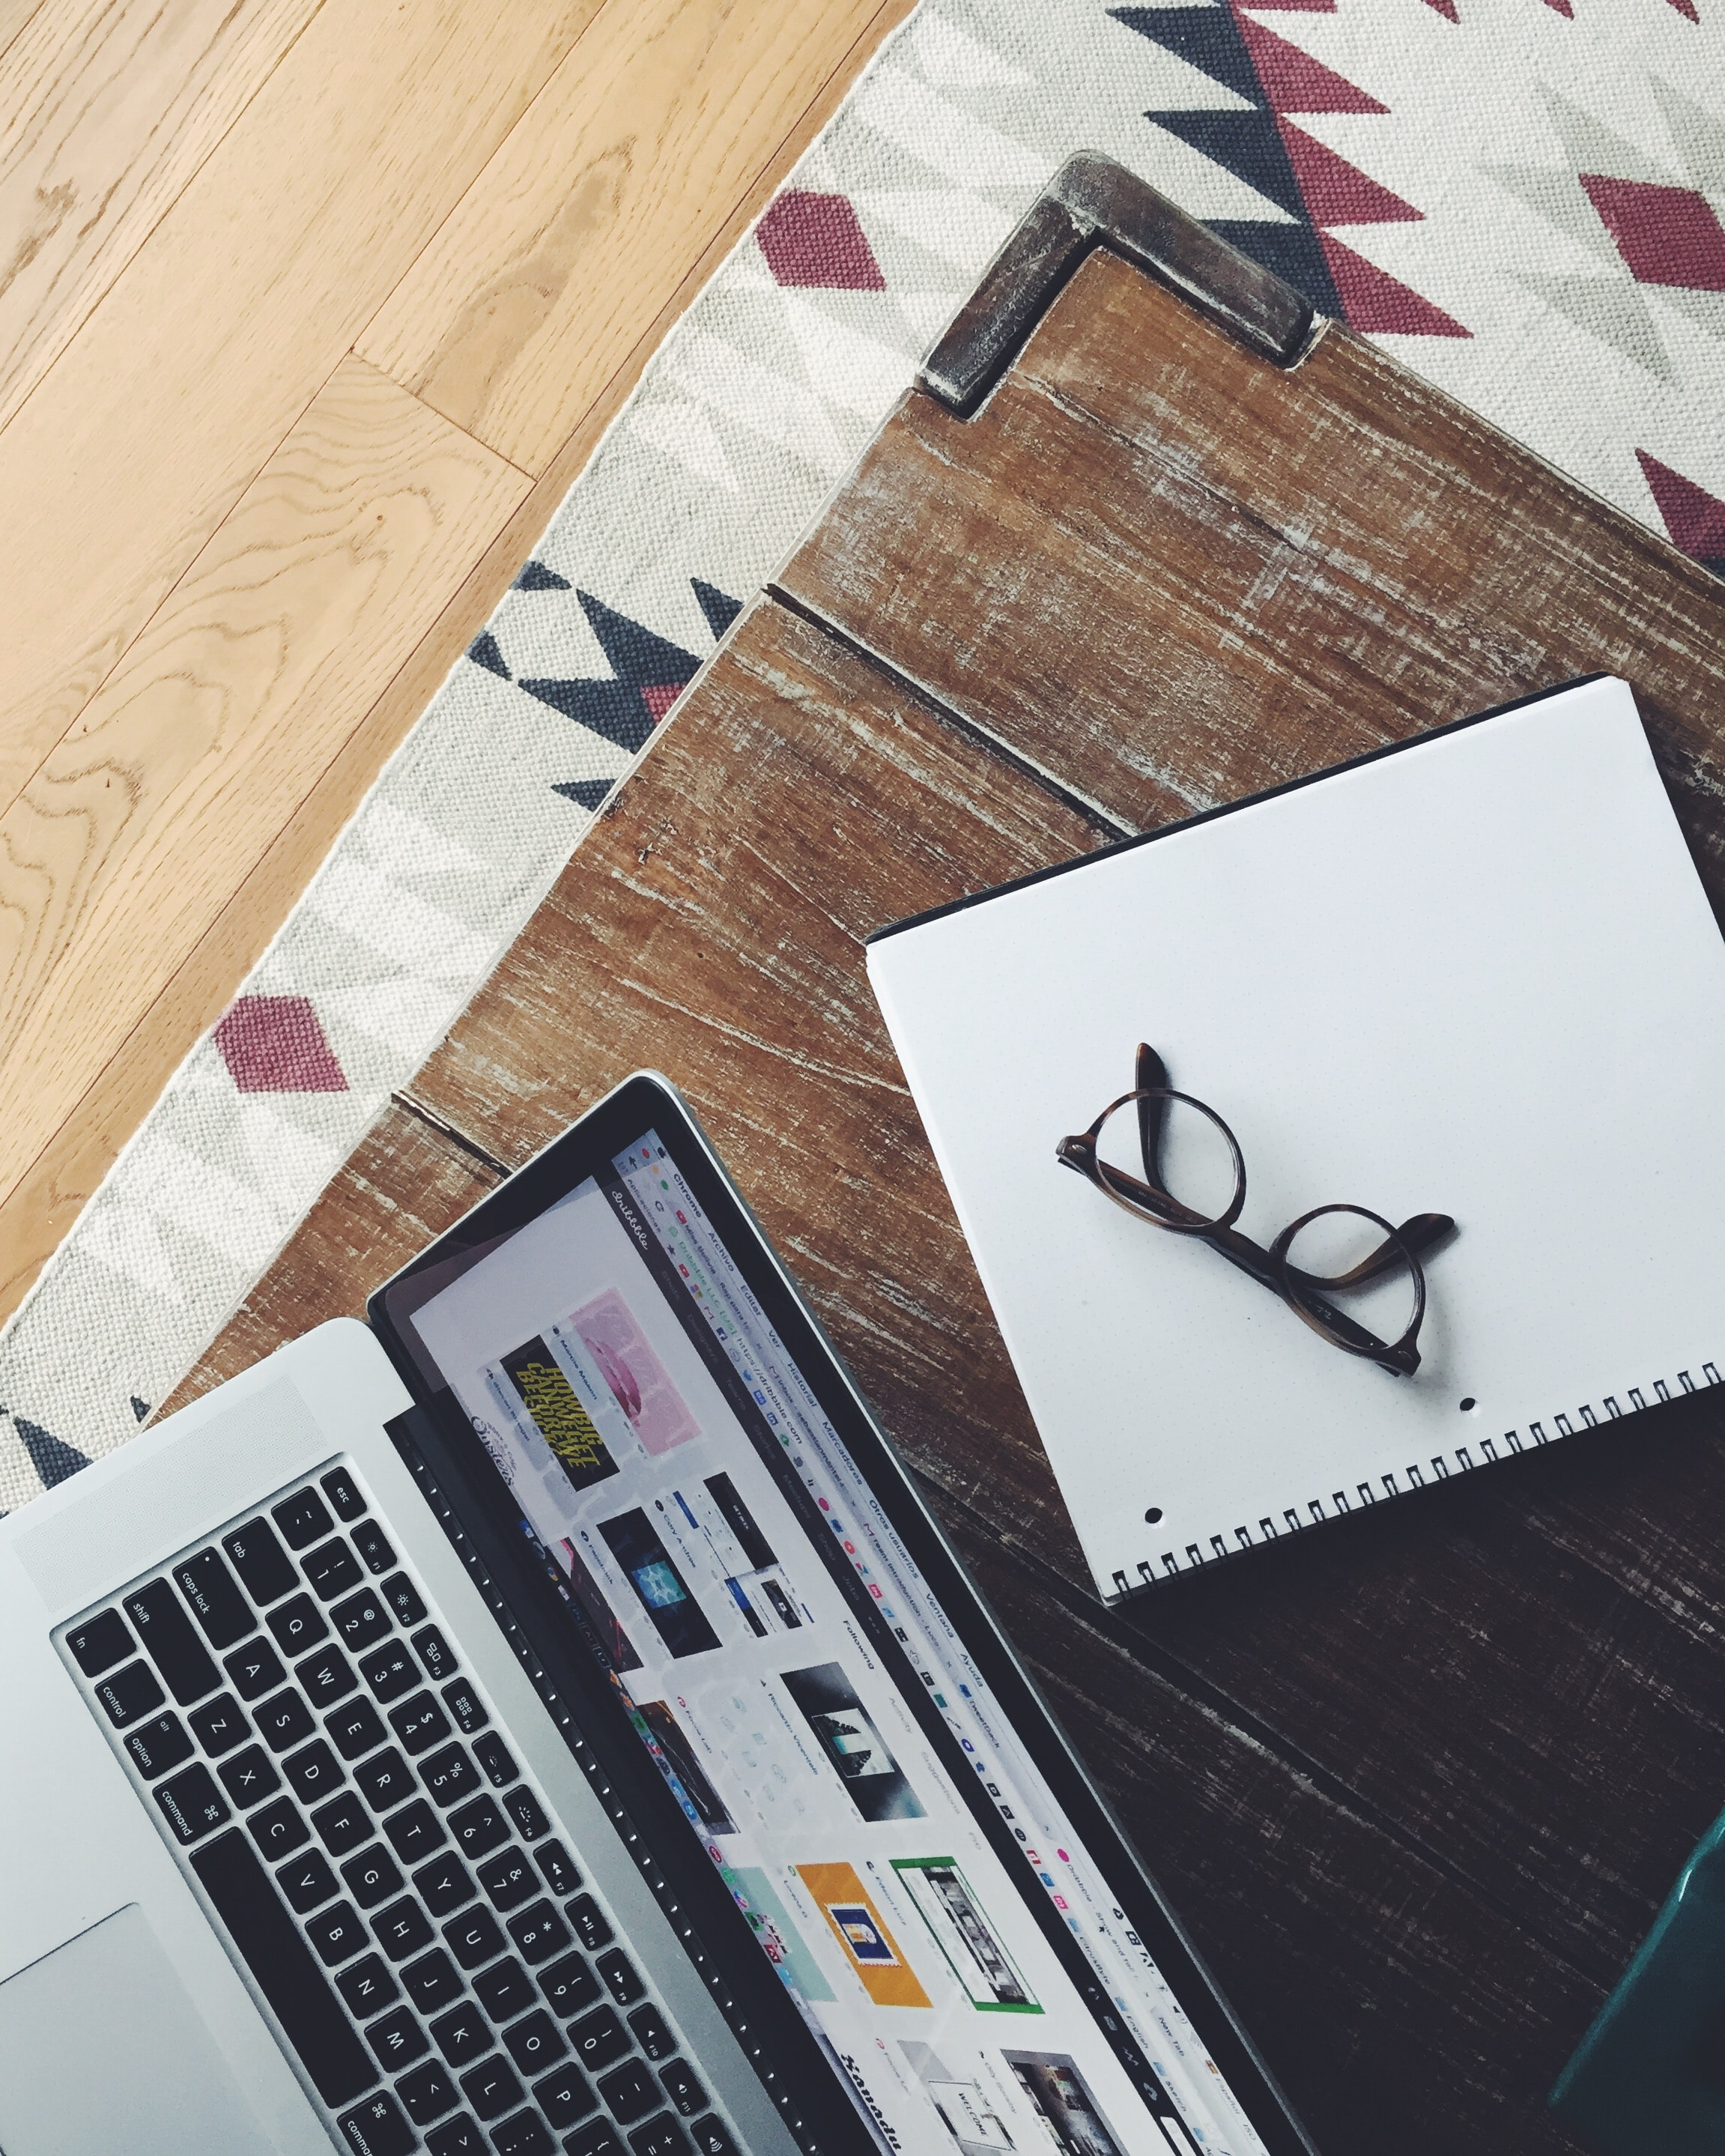 An overhead shot of a pair of glasses on a notebook next to a laptop